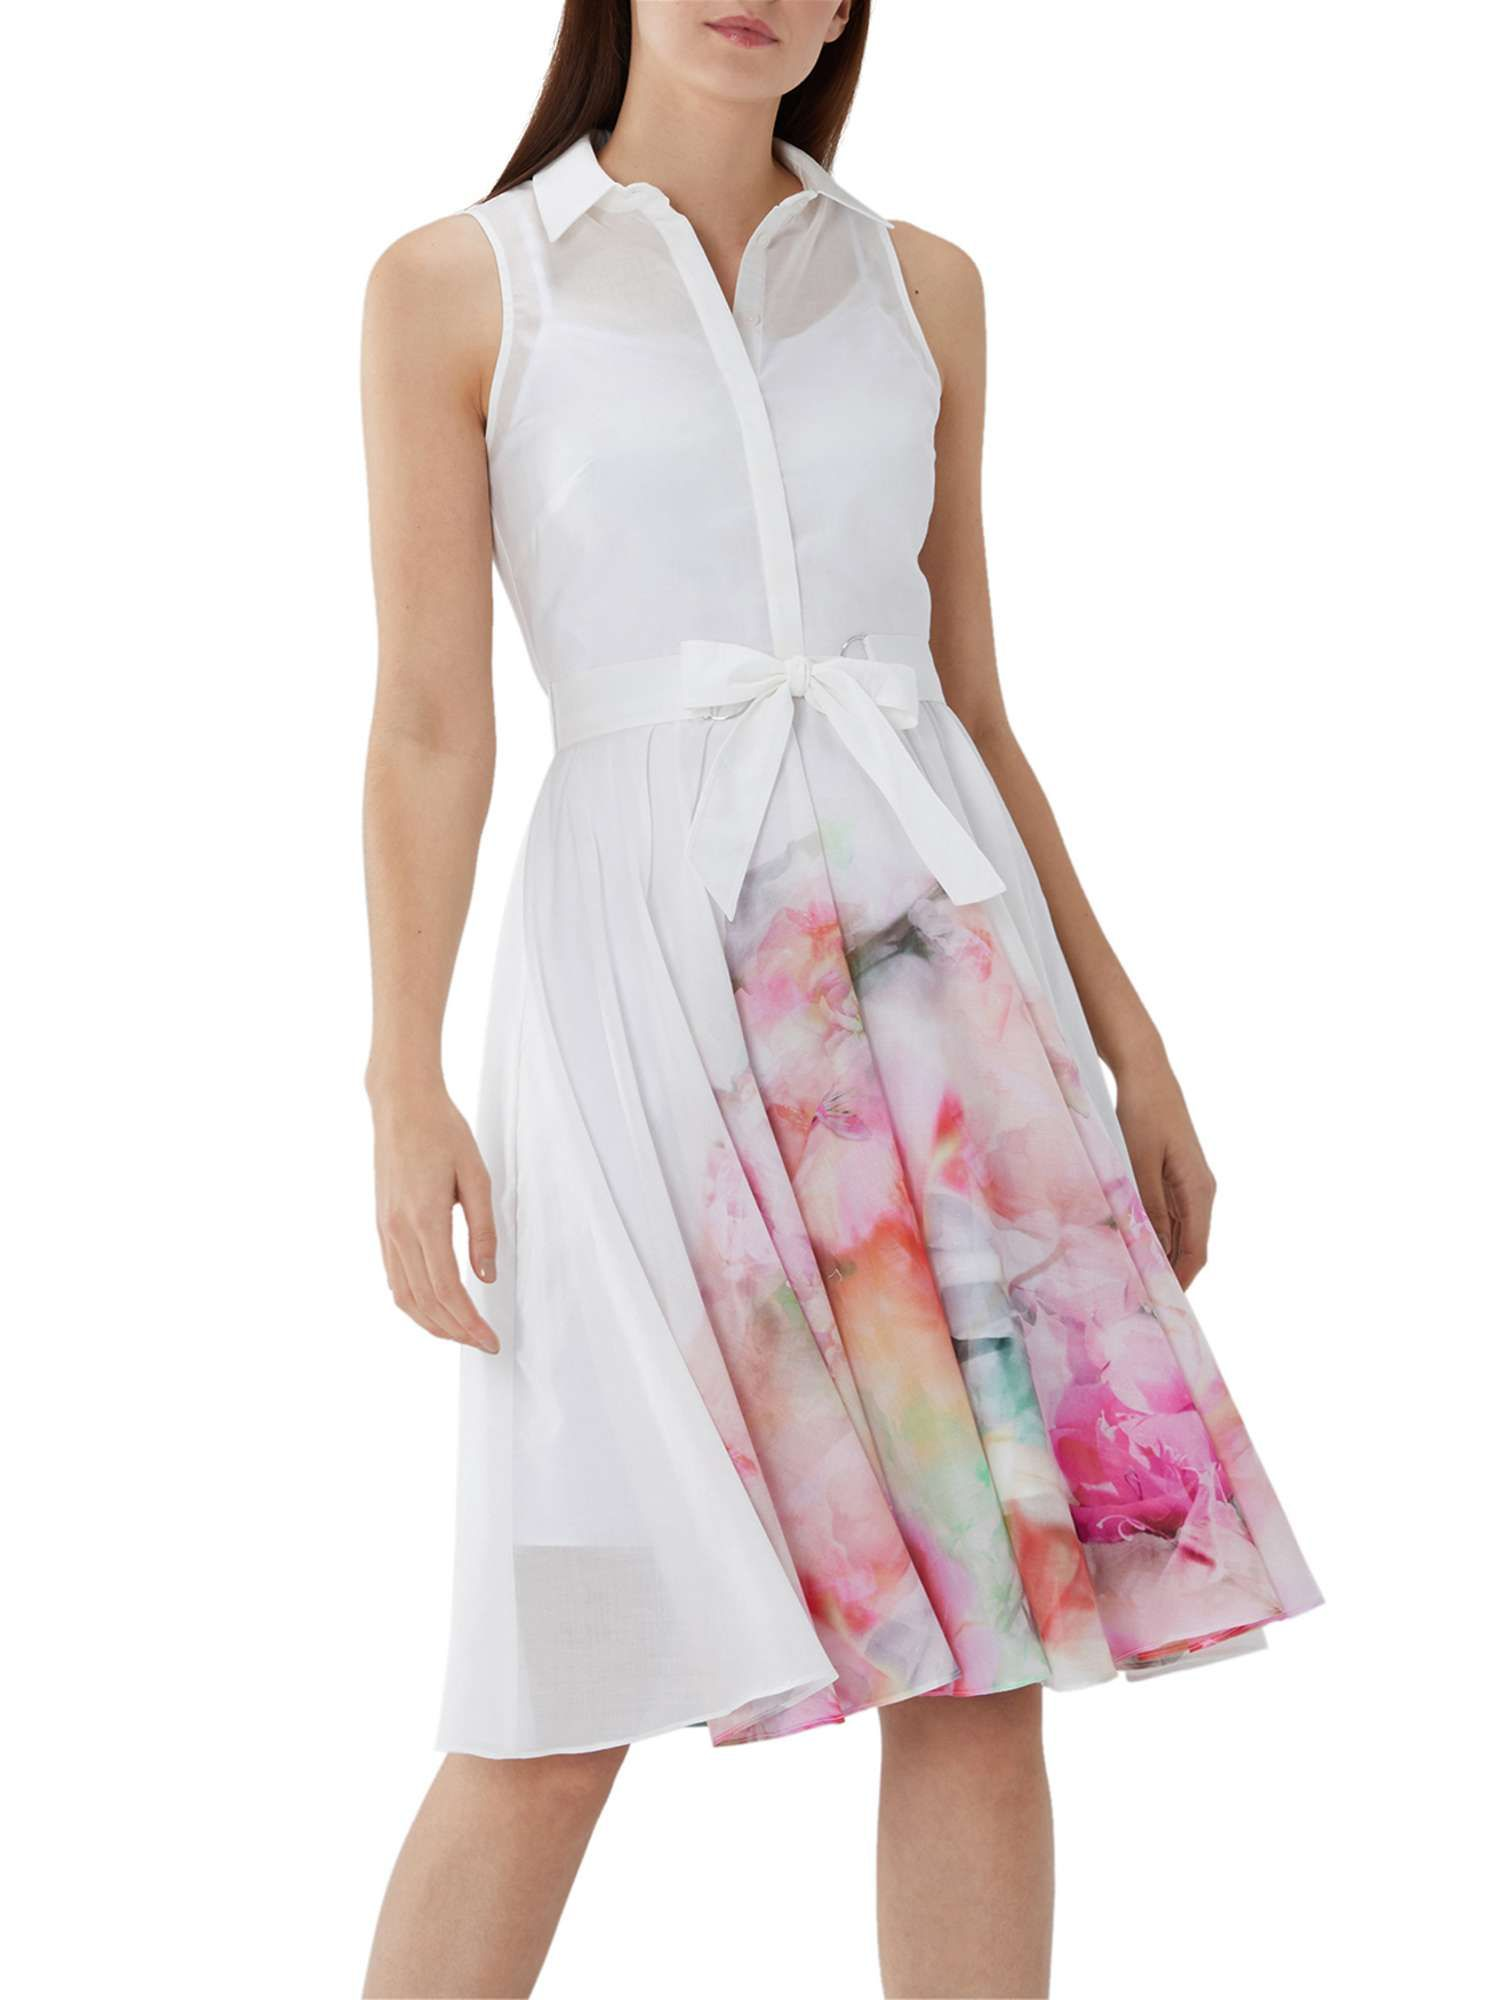 d5abec8d574 Coast Dresses House Of Fraser - Gomes Weine AG